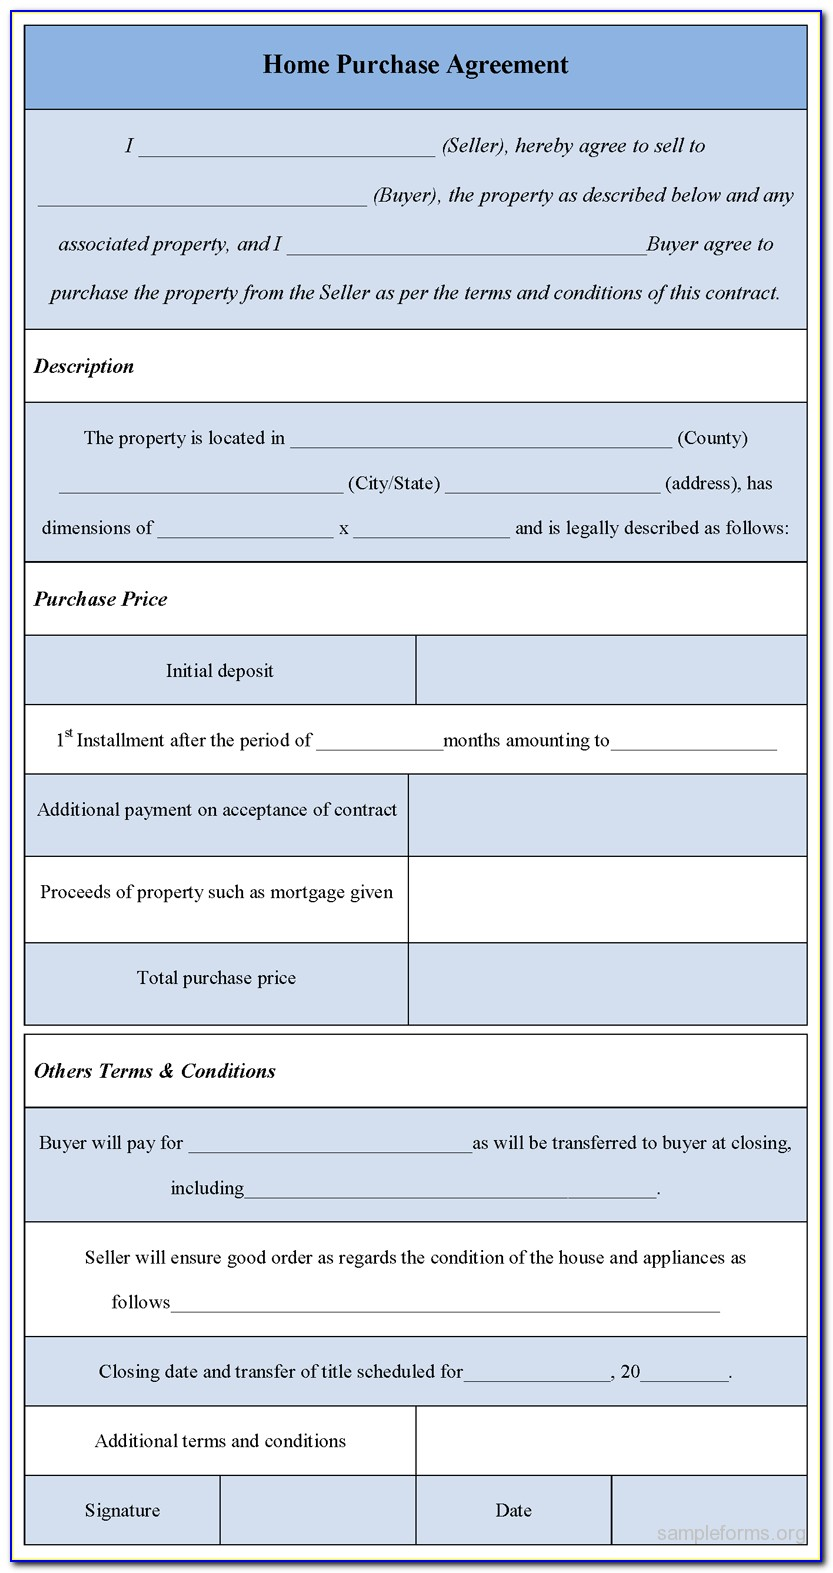 Home Purchase Agreement Form